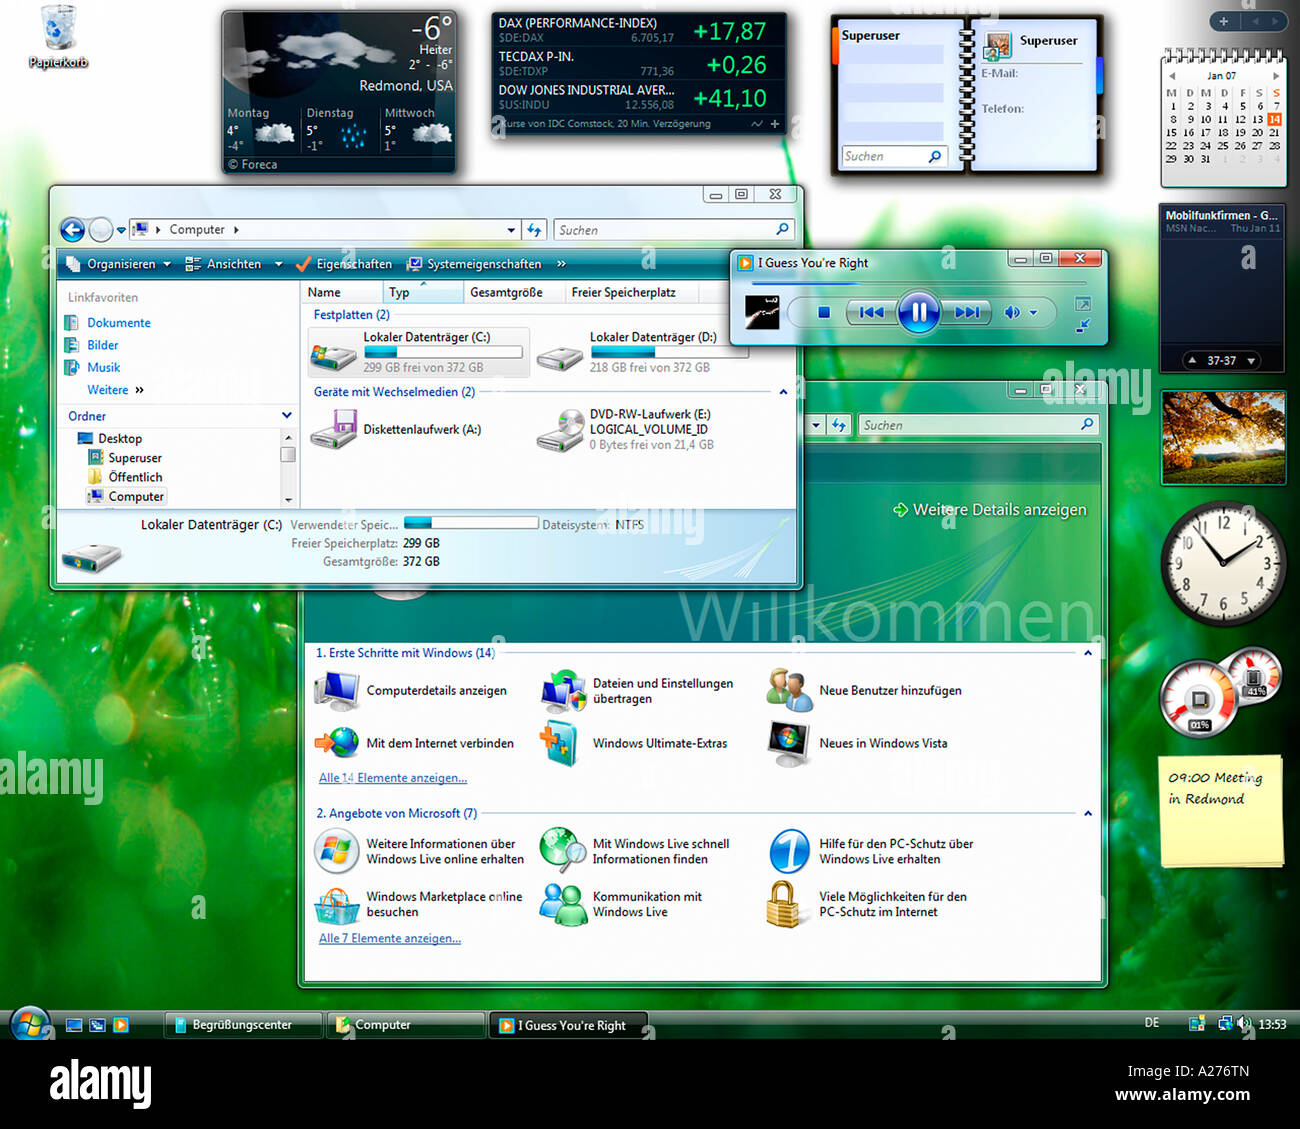 Microsoft Windows Vista, german version, desktop with started applications, screenshot - Stock Image